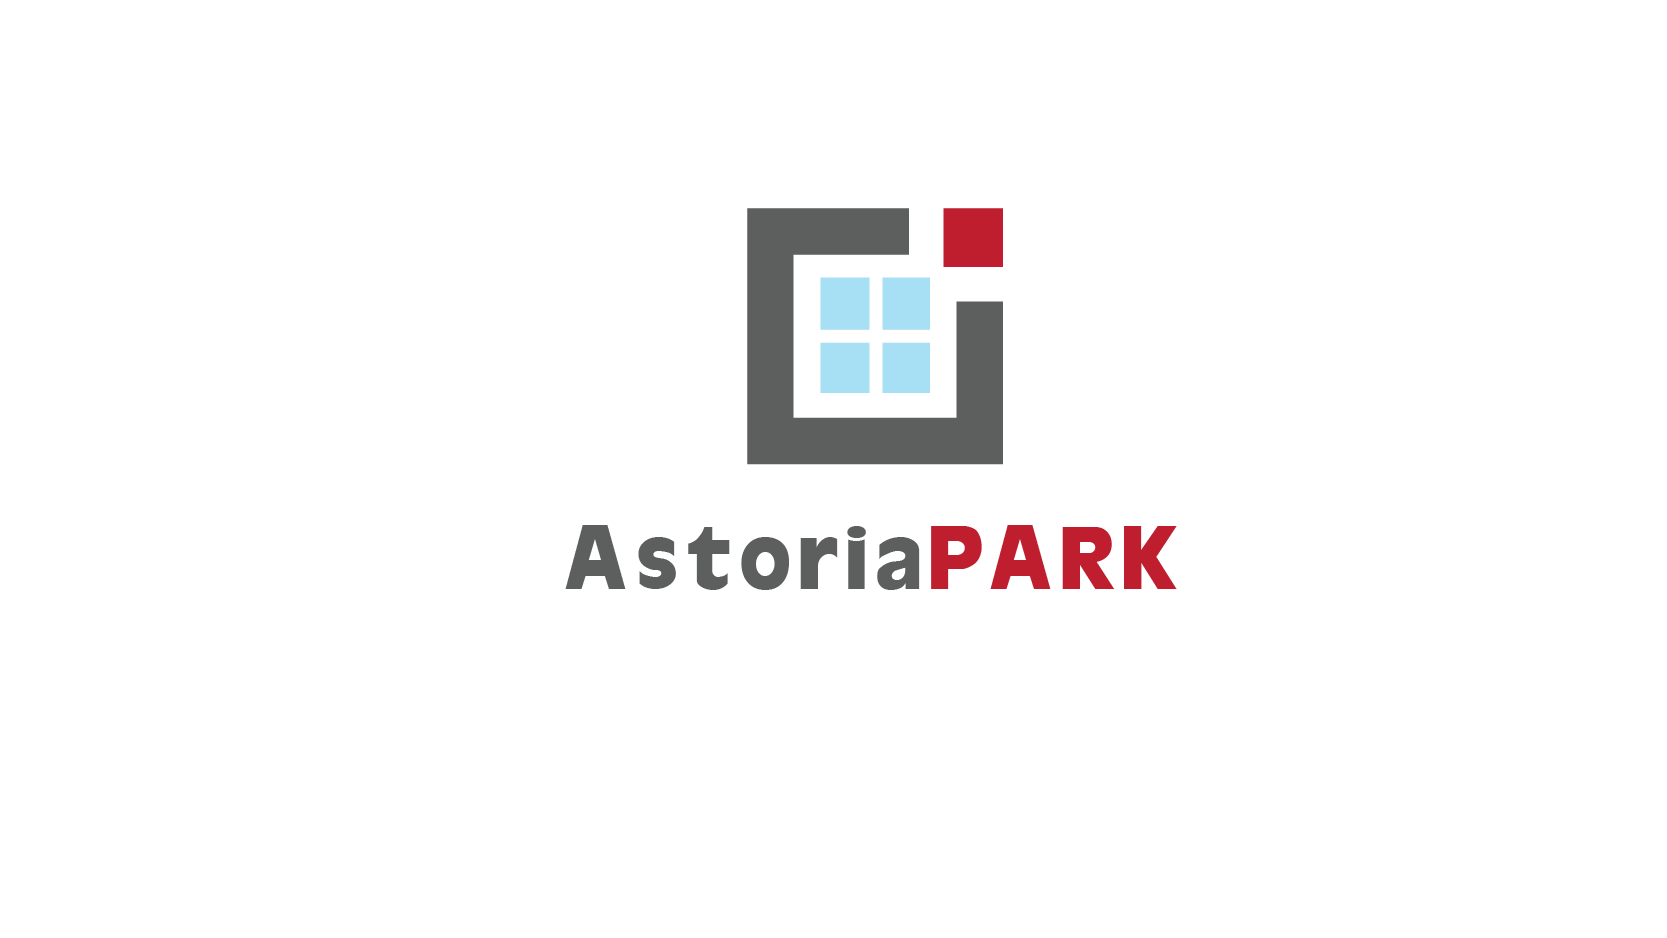 AstoriaPark.com